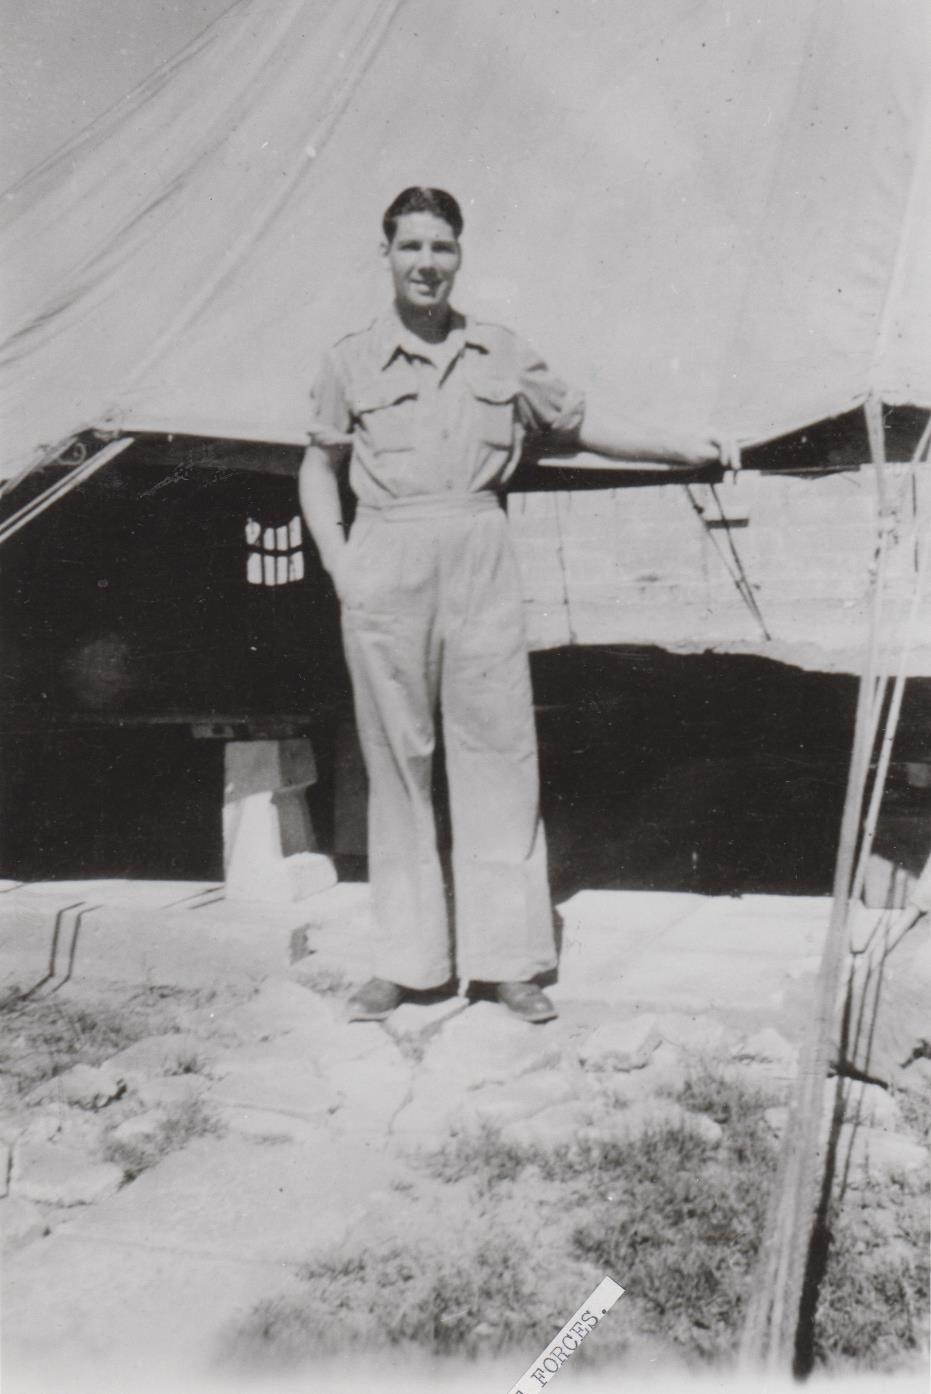 h385_sam_freer_outside_tent-001.jpg